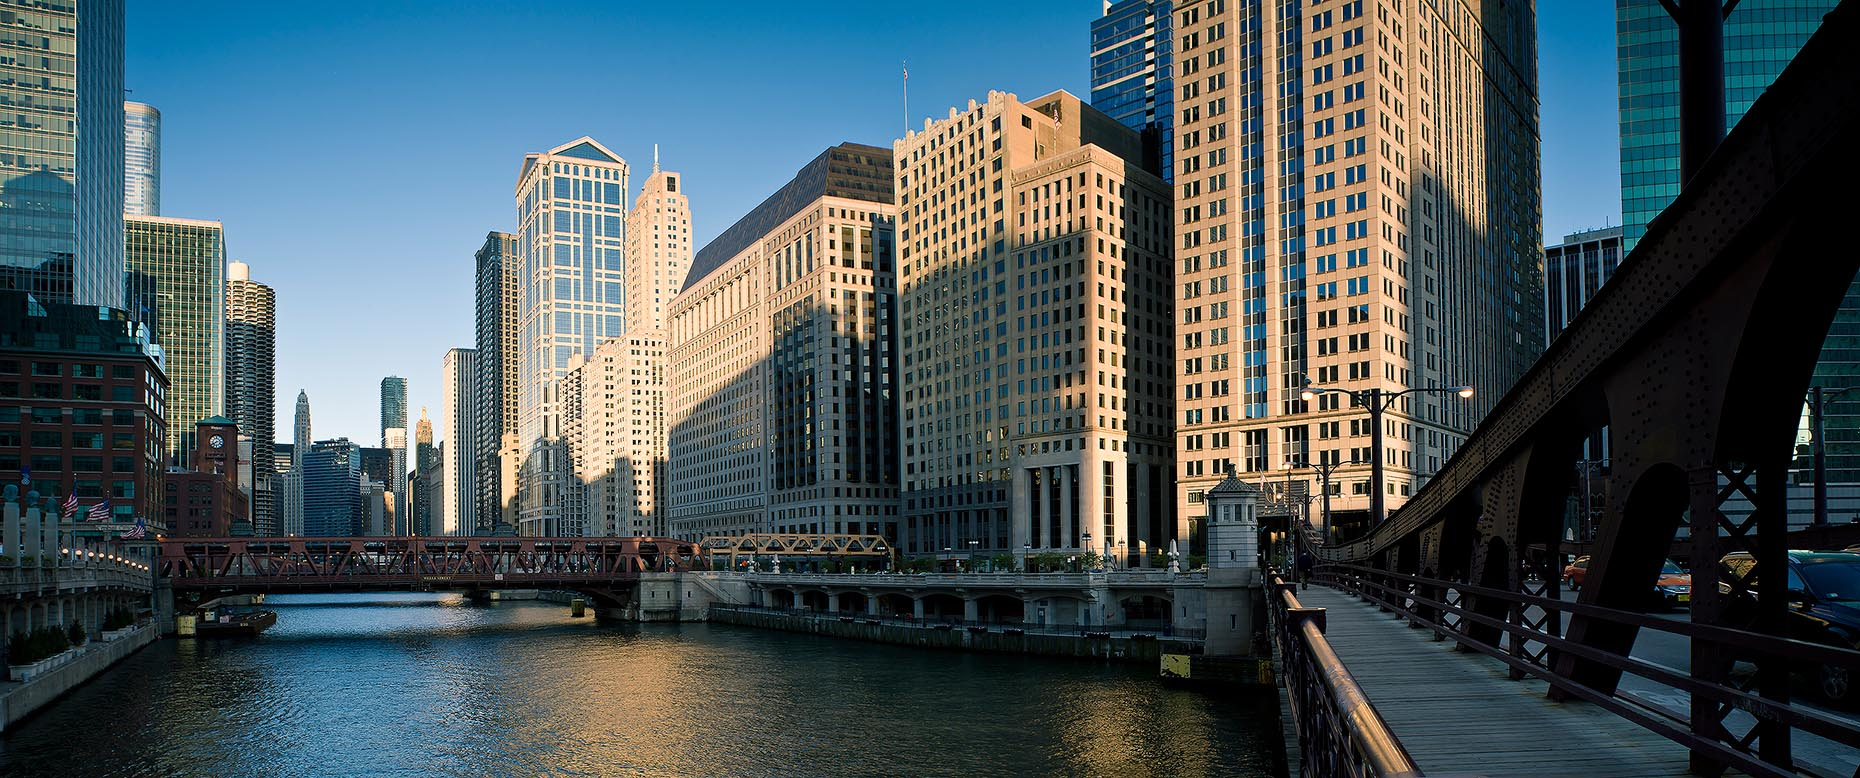 downtown-chicago-cityscape-panoramic-illinoise-usa-architecture-18a